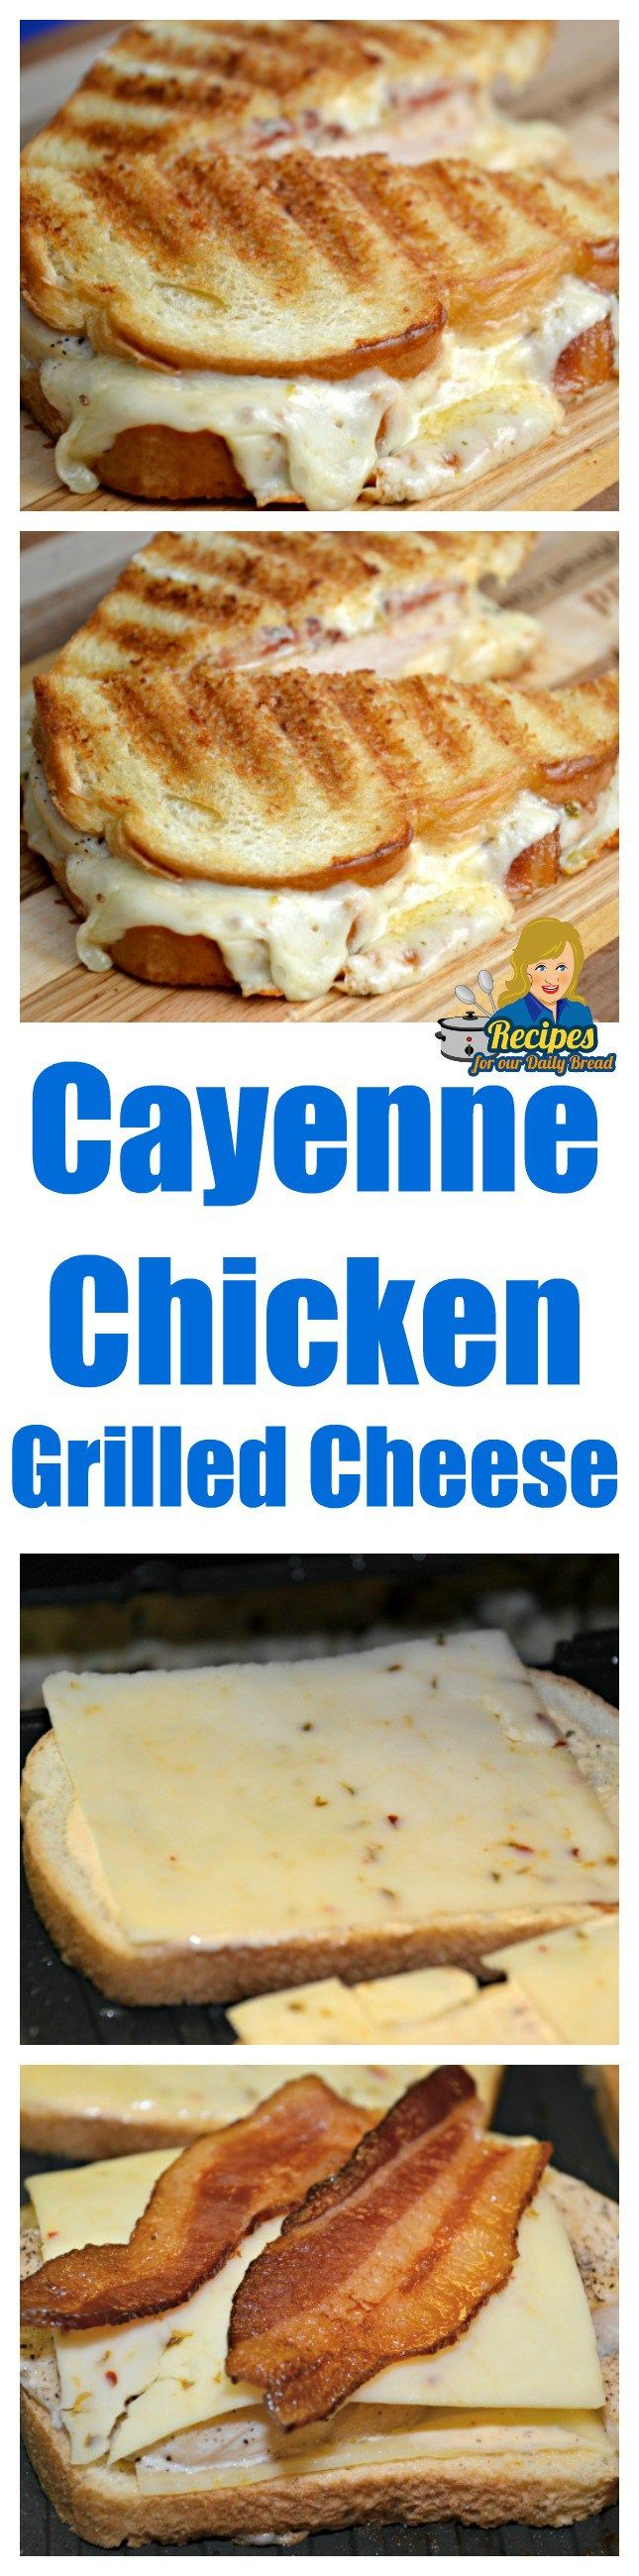 Cayenne Ranch Chicken Grilled Cheese includes bacon, Monterey Jack cheese, Cayenne Ranch, and a cooked chicken breast I butterflied. SEE video on post.